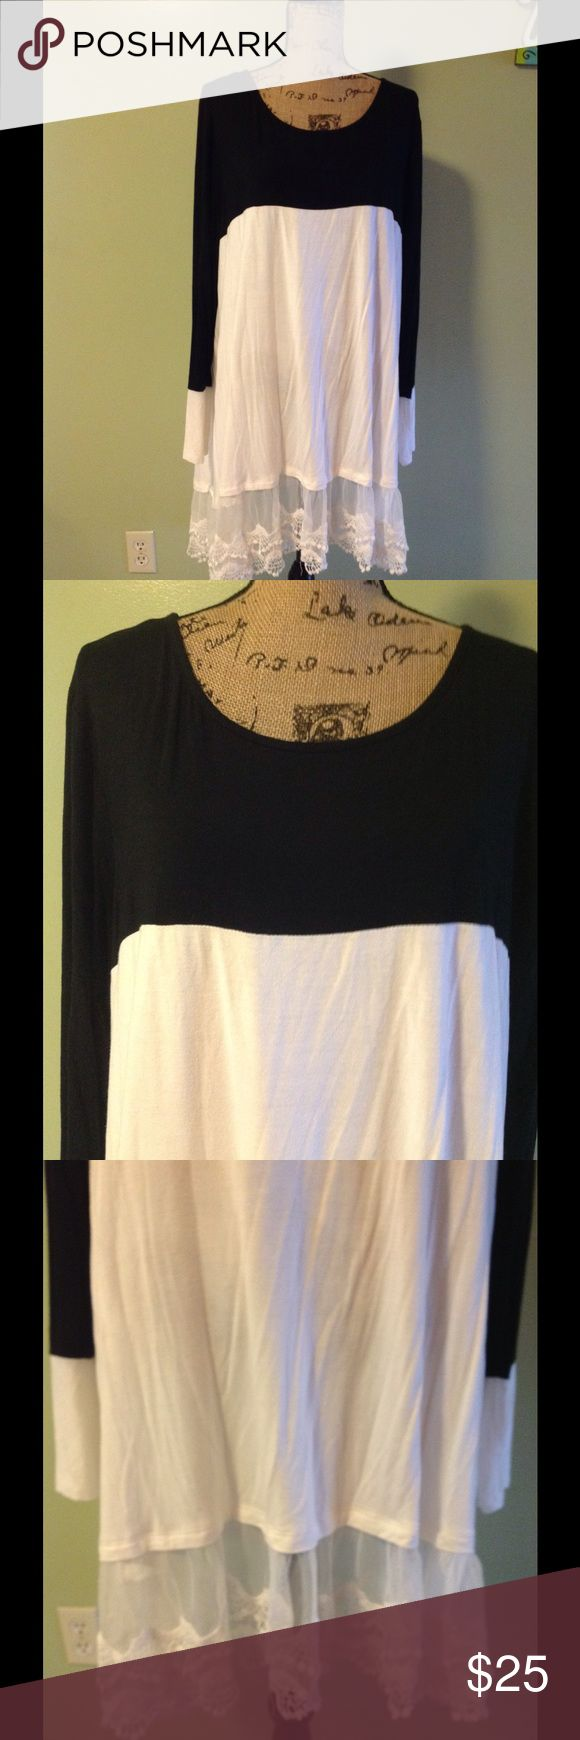 Reborn J tunic dress 3X Reborn J tunic 3X. Could be worn as a dress. It is white with black at the top. It has white lace material at the bottom. Long sleeve. I don't know the material but it's very soft and stretchy. Good condition Reborn J Tops Tunics